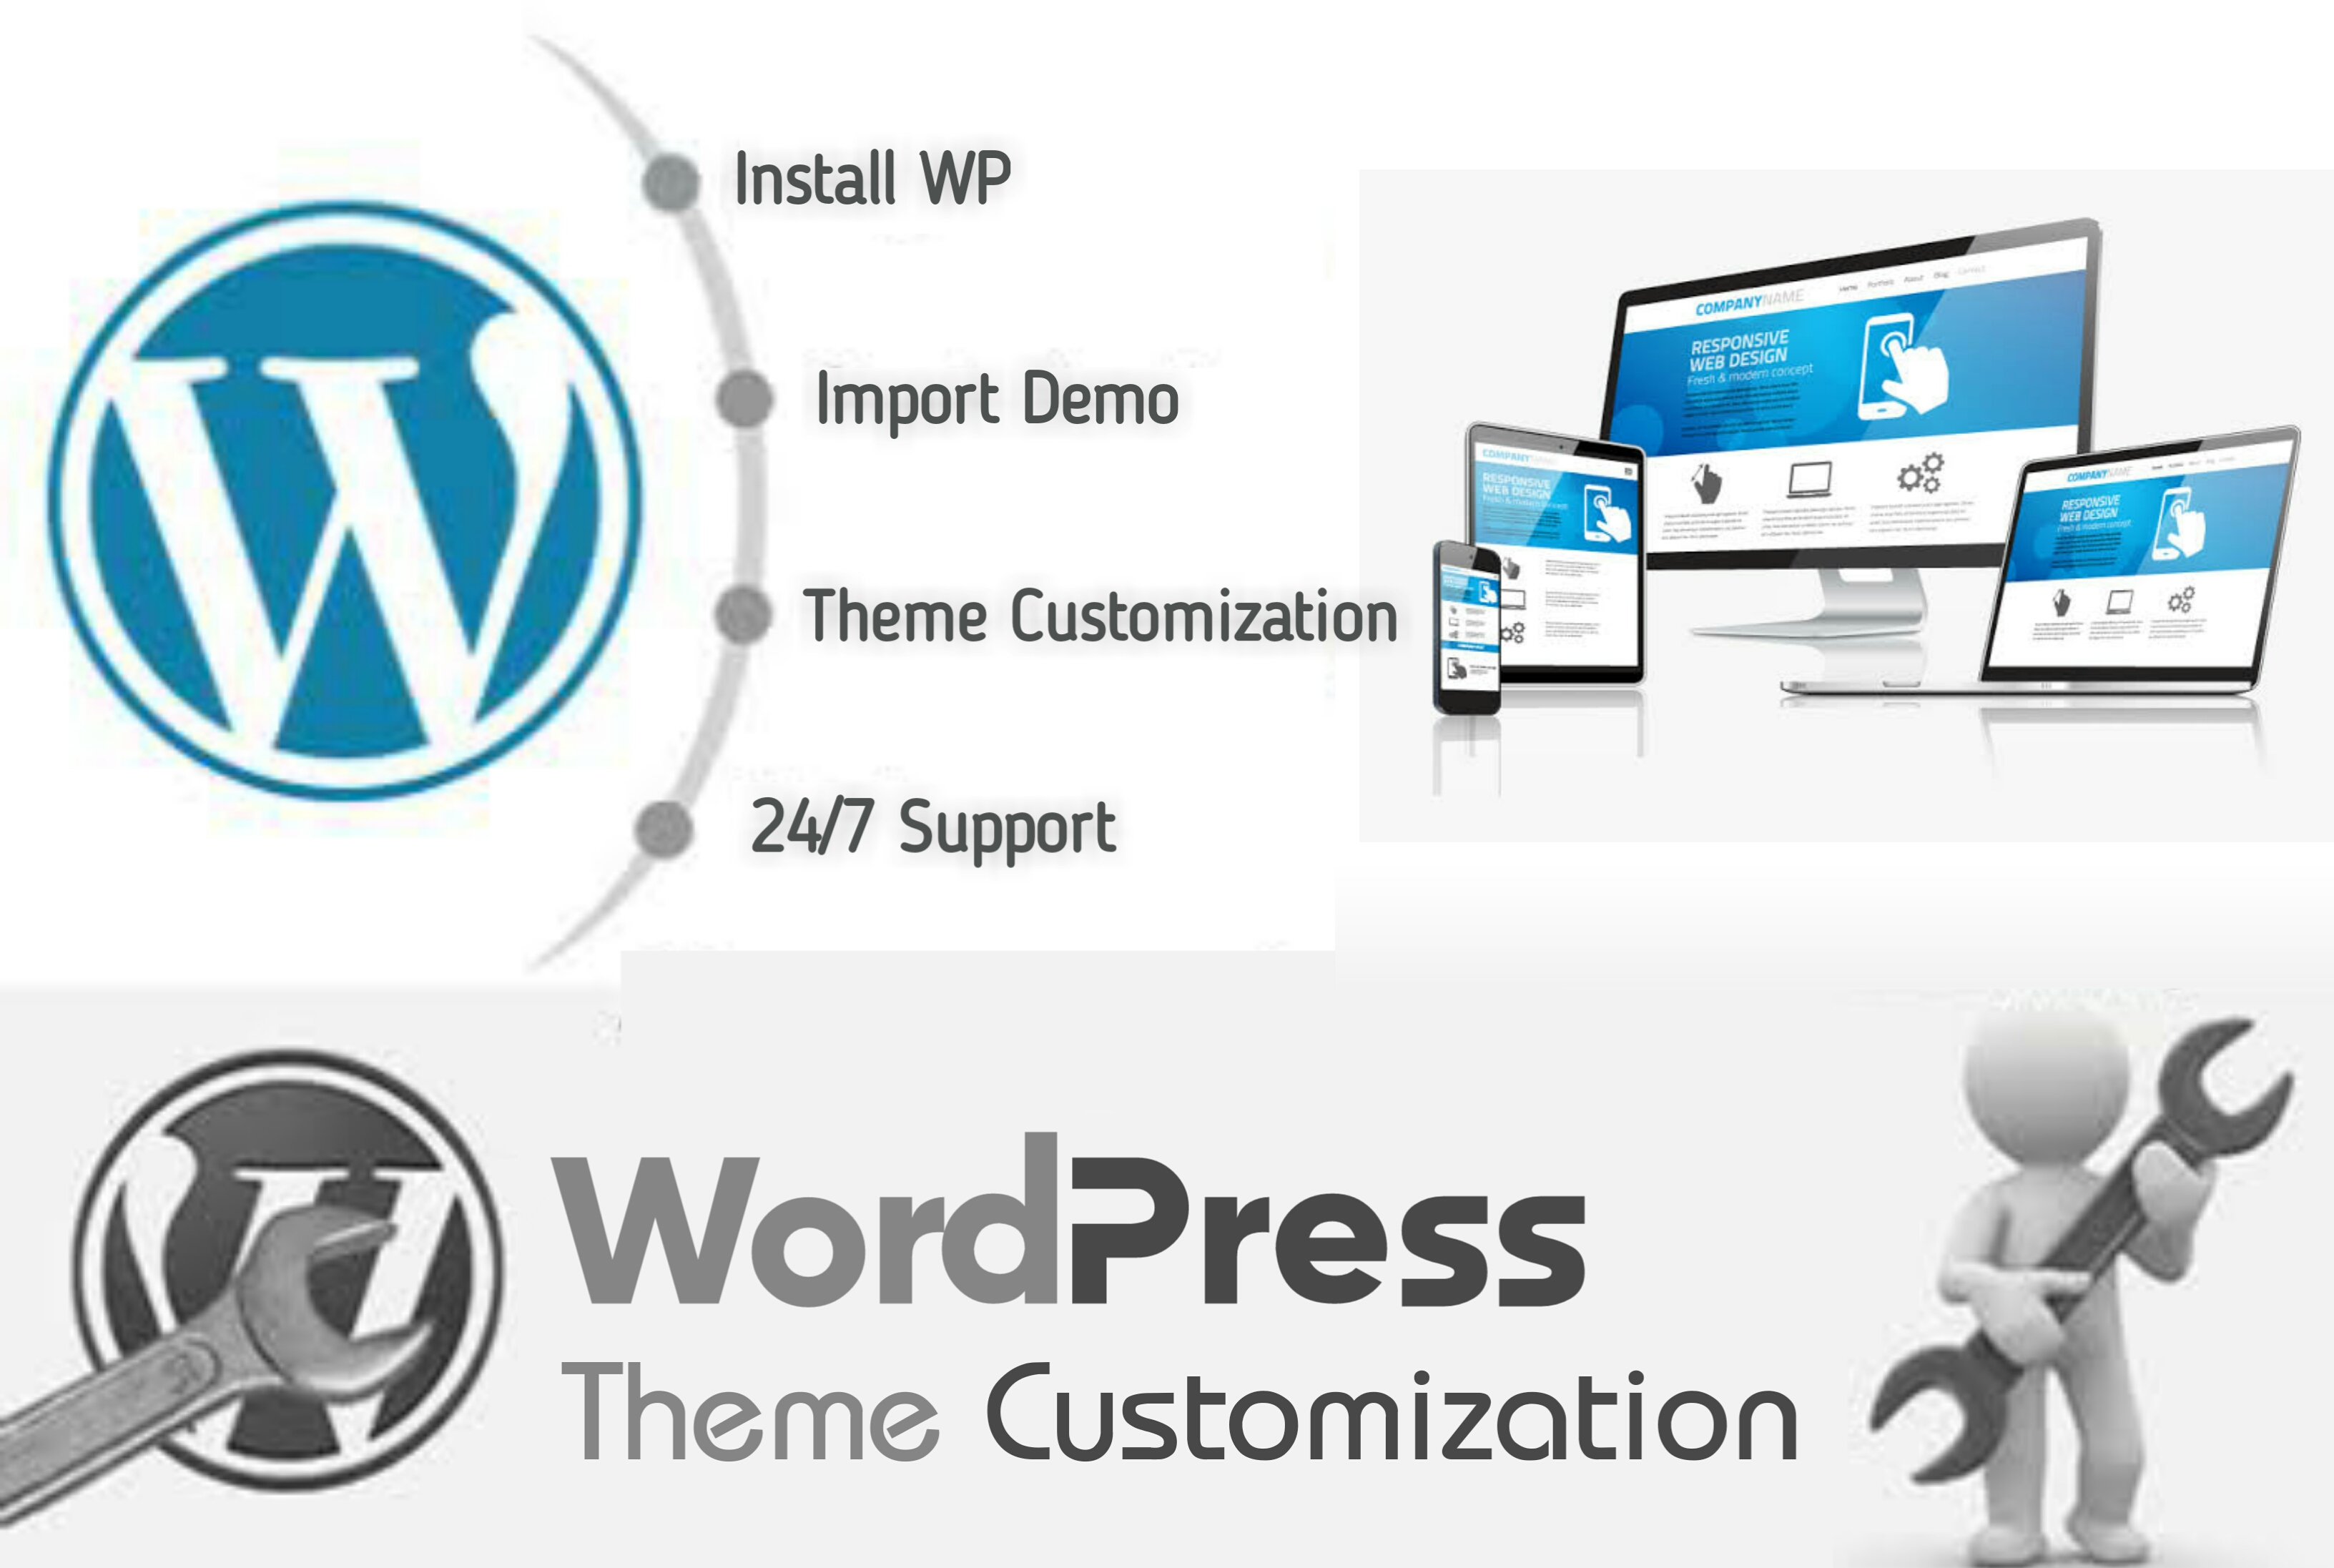 I will install wordpress, Customize theme and import demo